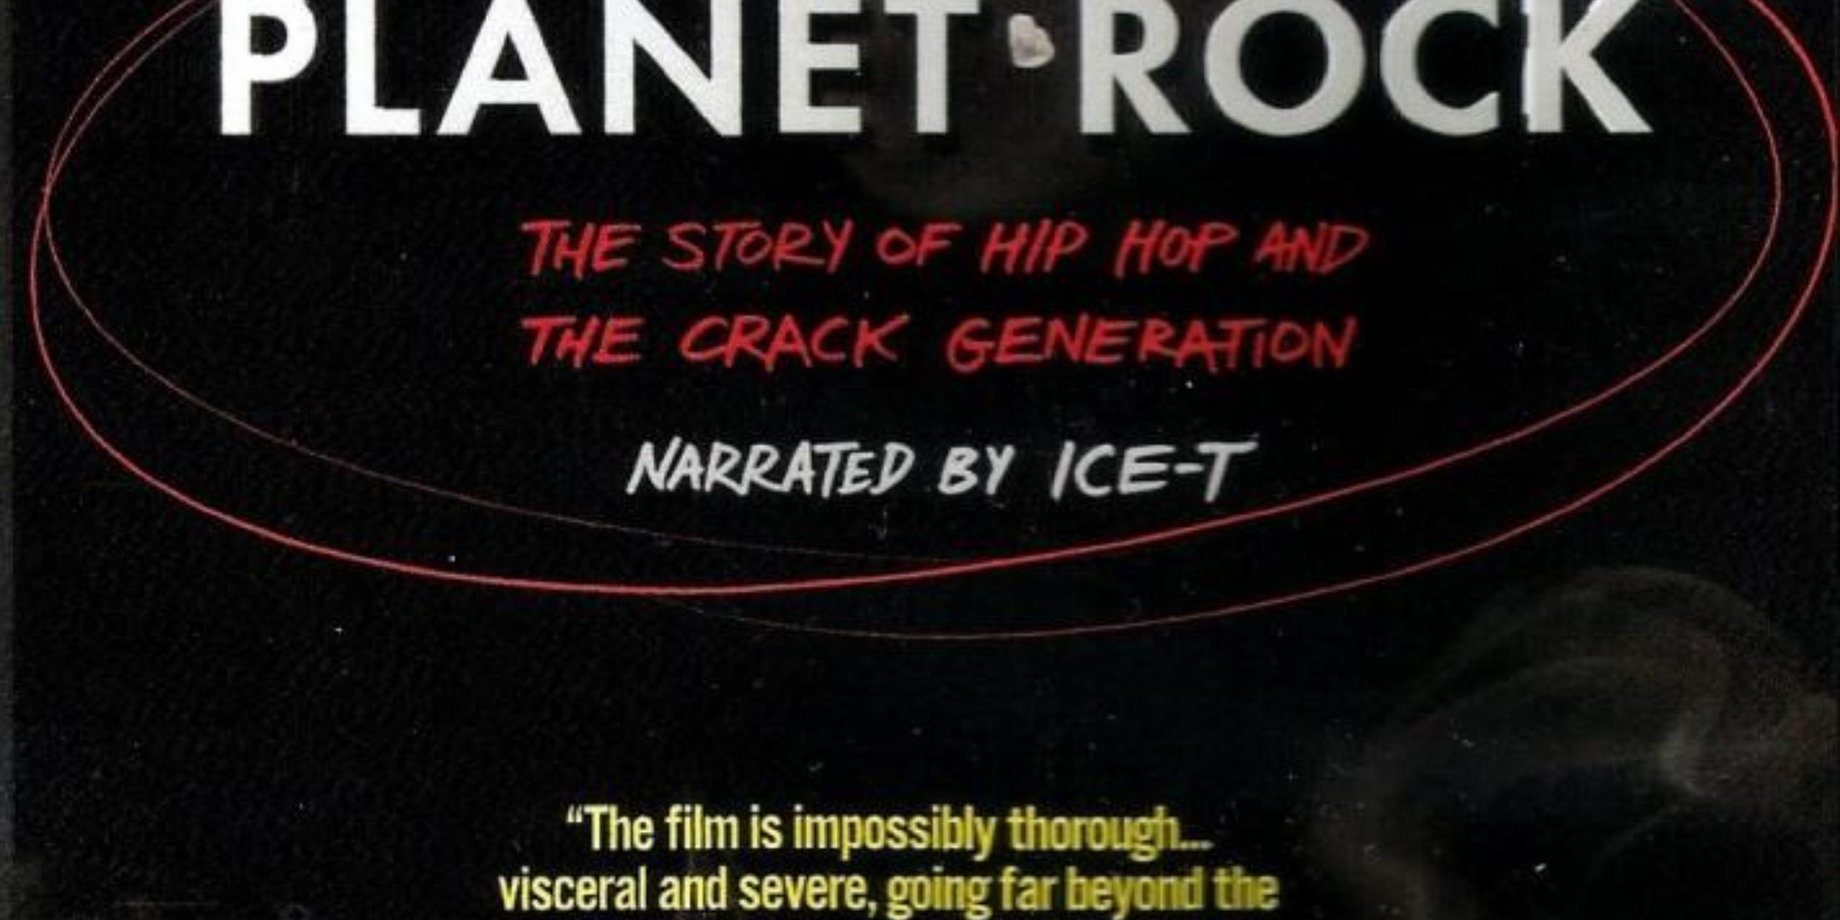 the history of hip hop generation